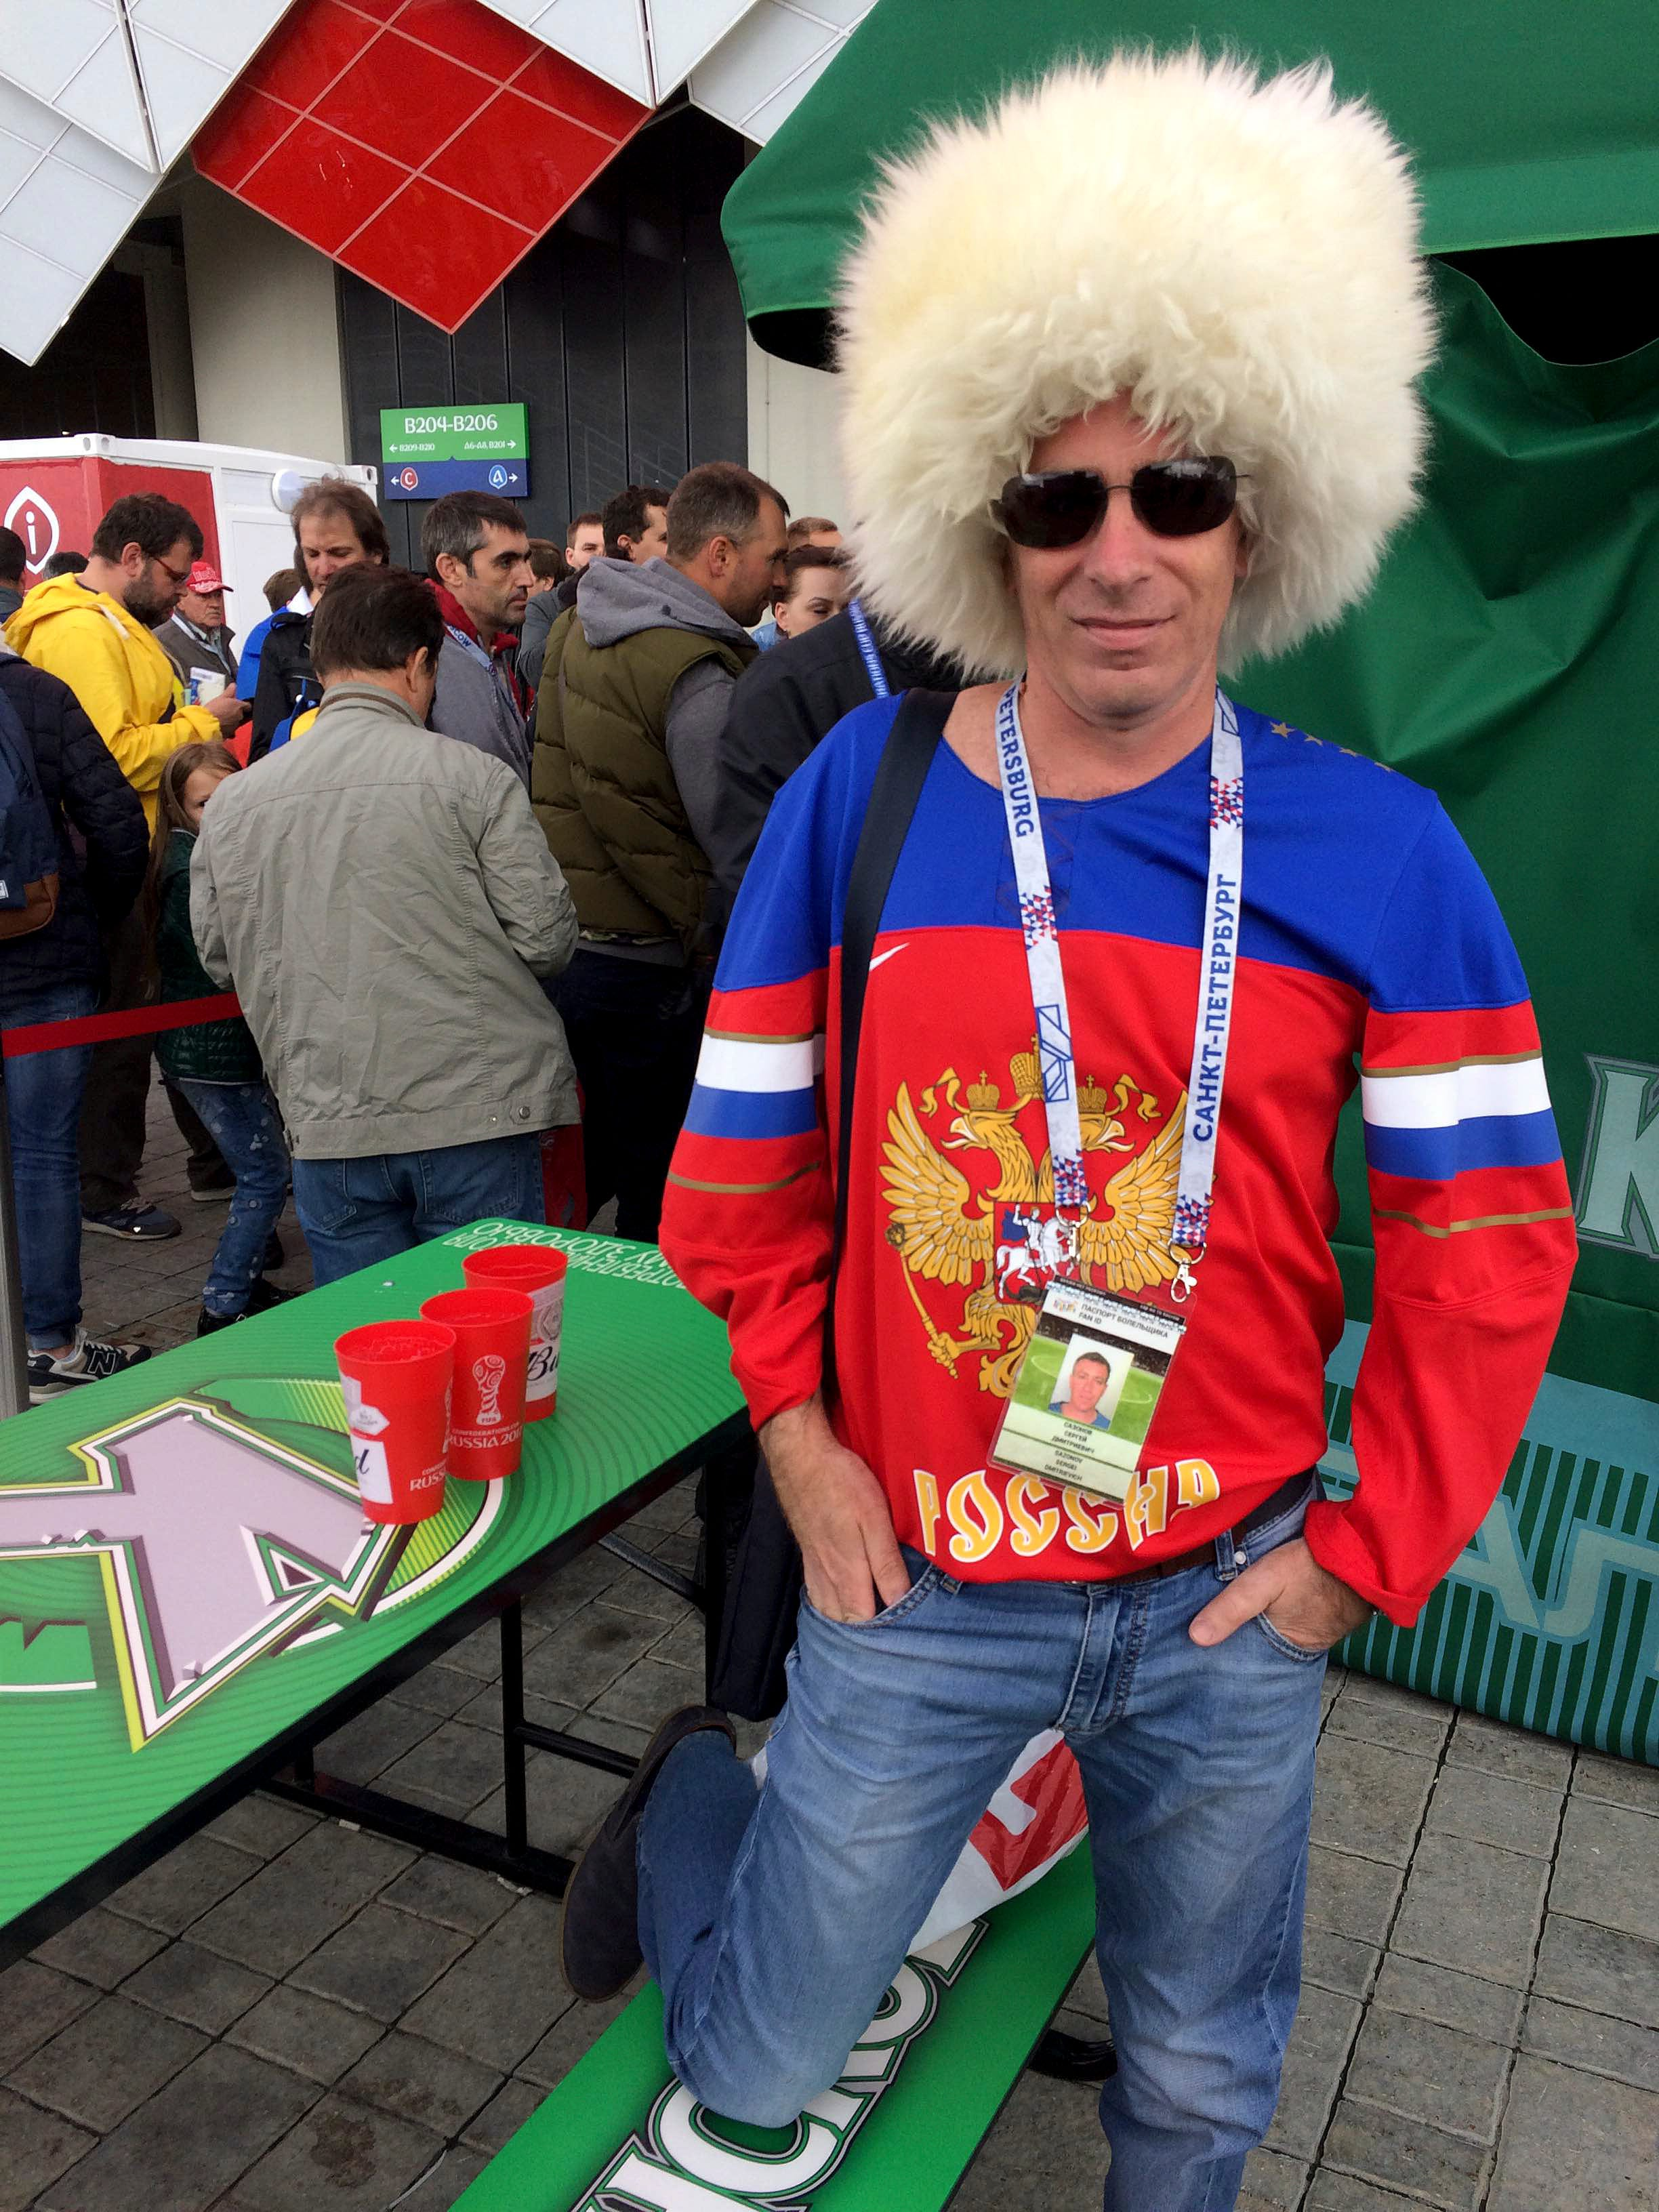 Russians hit the bar as beer ban lifted for Confed Cup